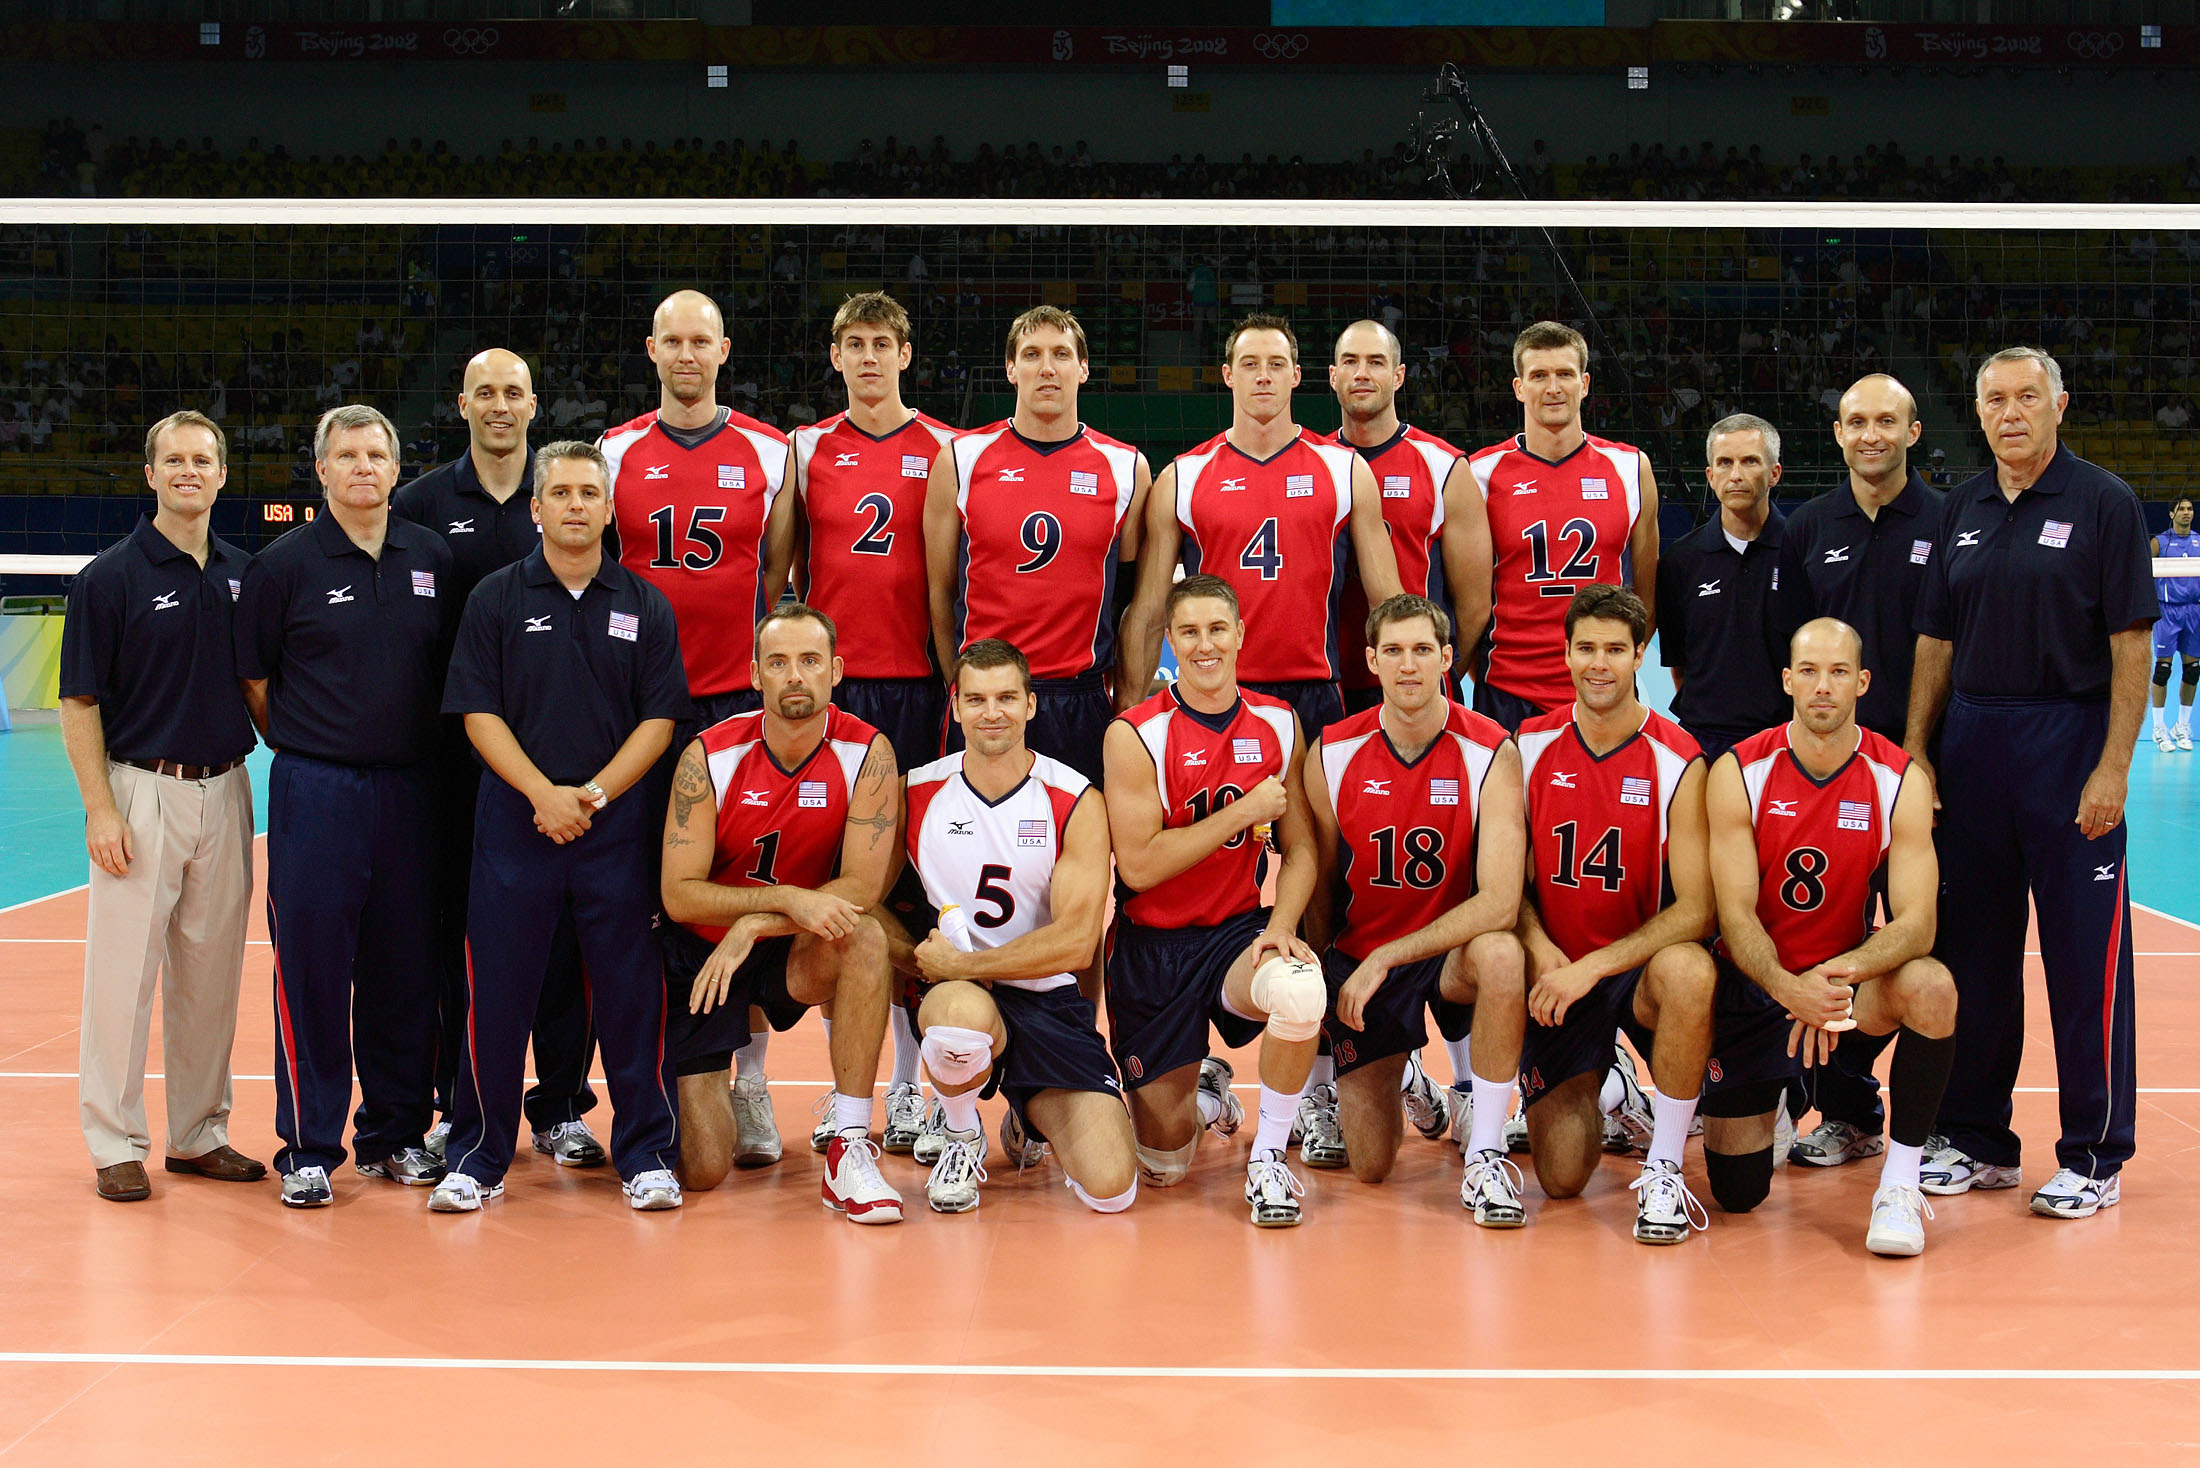 2008 Men S Olympic Games Team Roster Usa